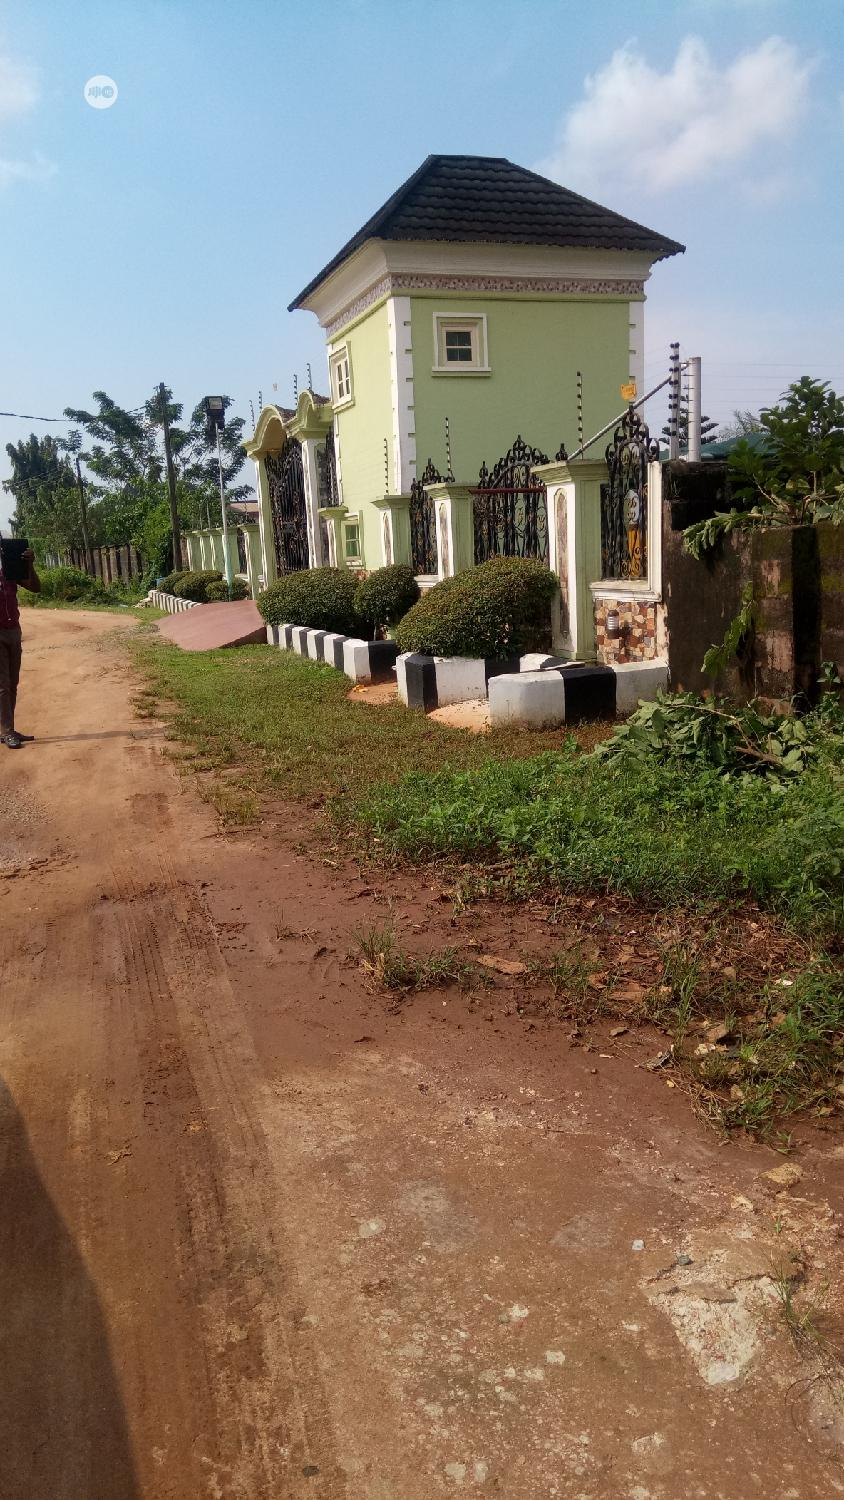 Genuine Plot of Land Measuring 100X200 for Urgent Sale   Land & Plots For Sale for sale in Benin City, Edo State, Nigeria